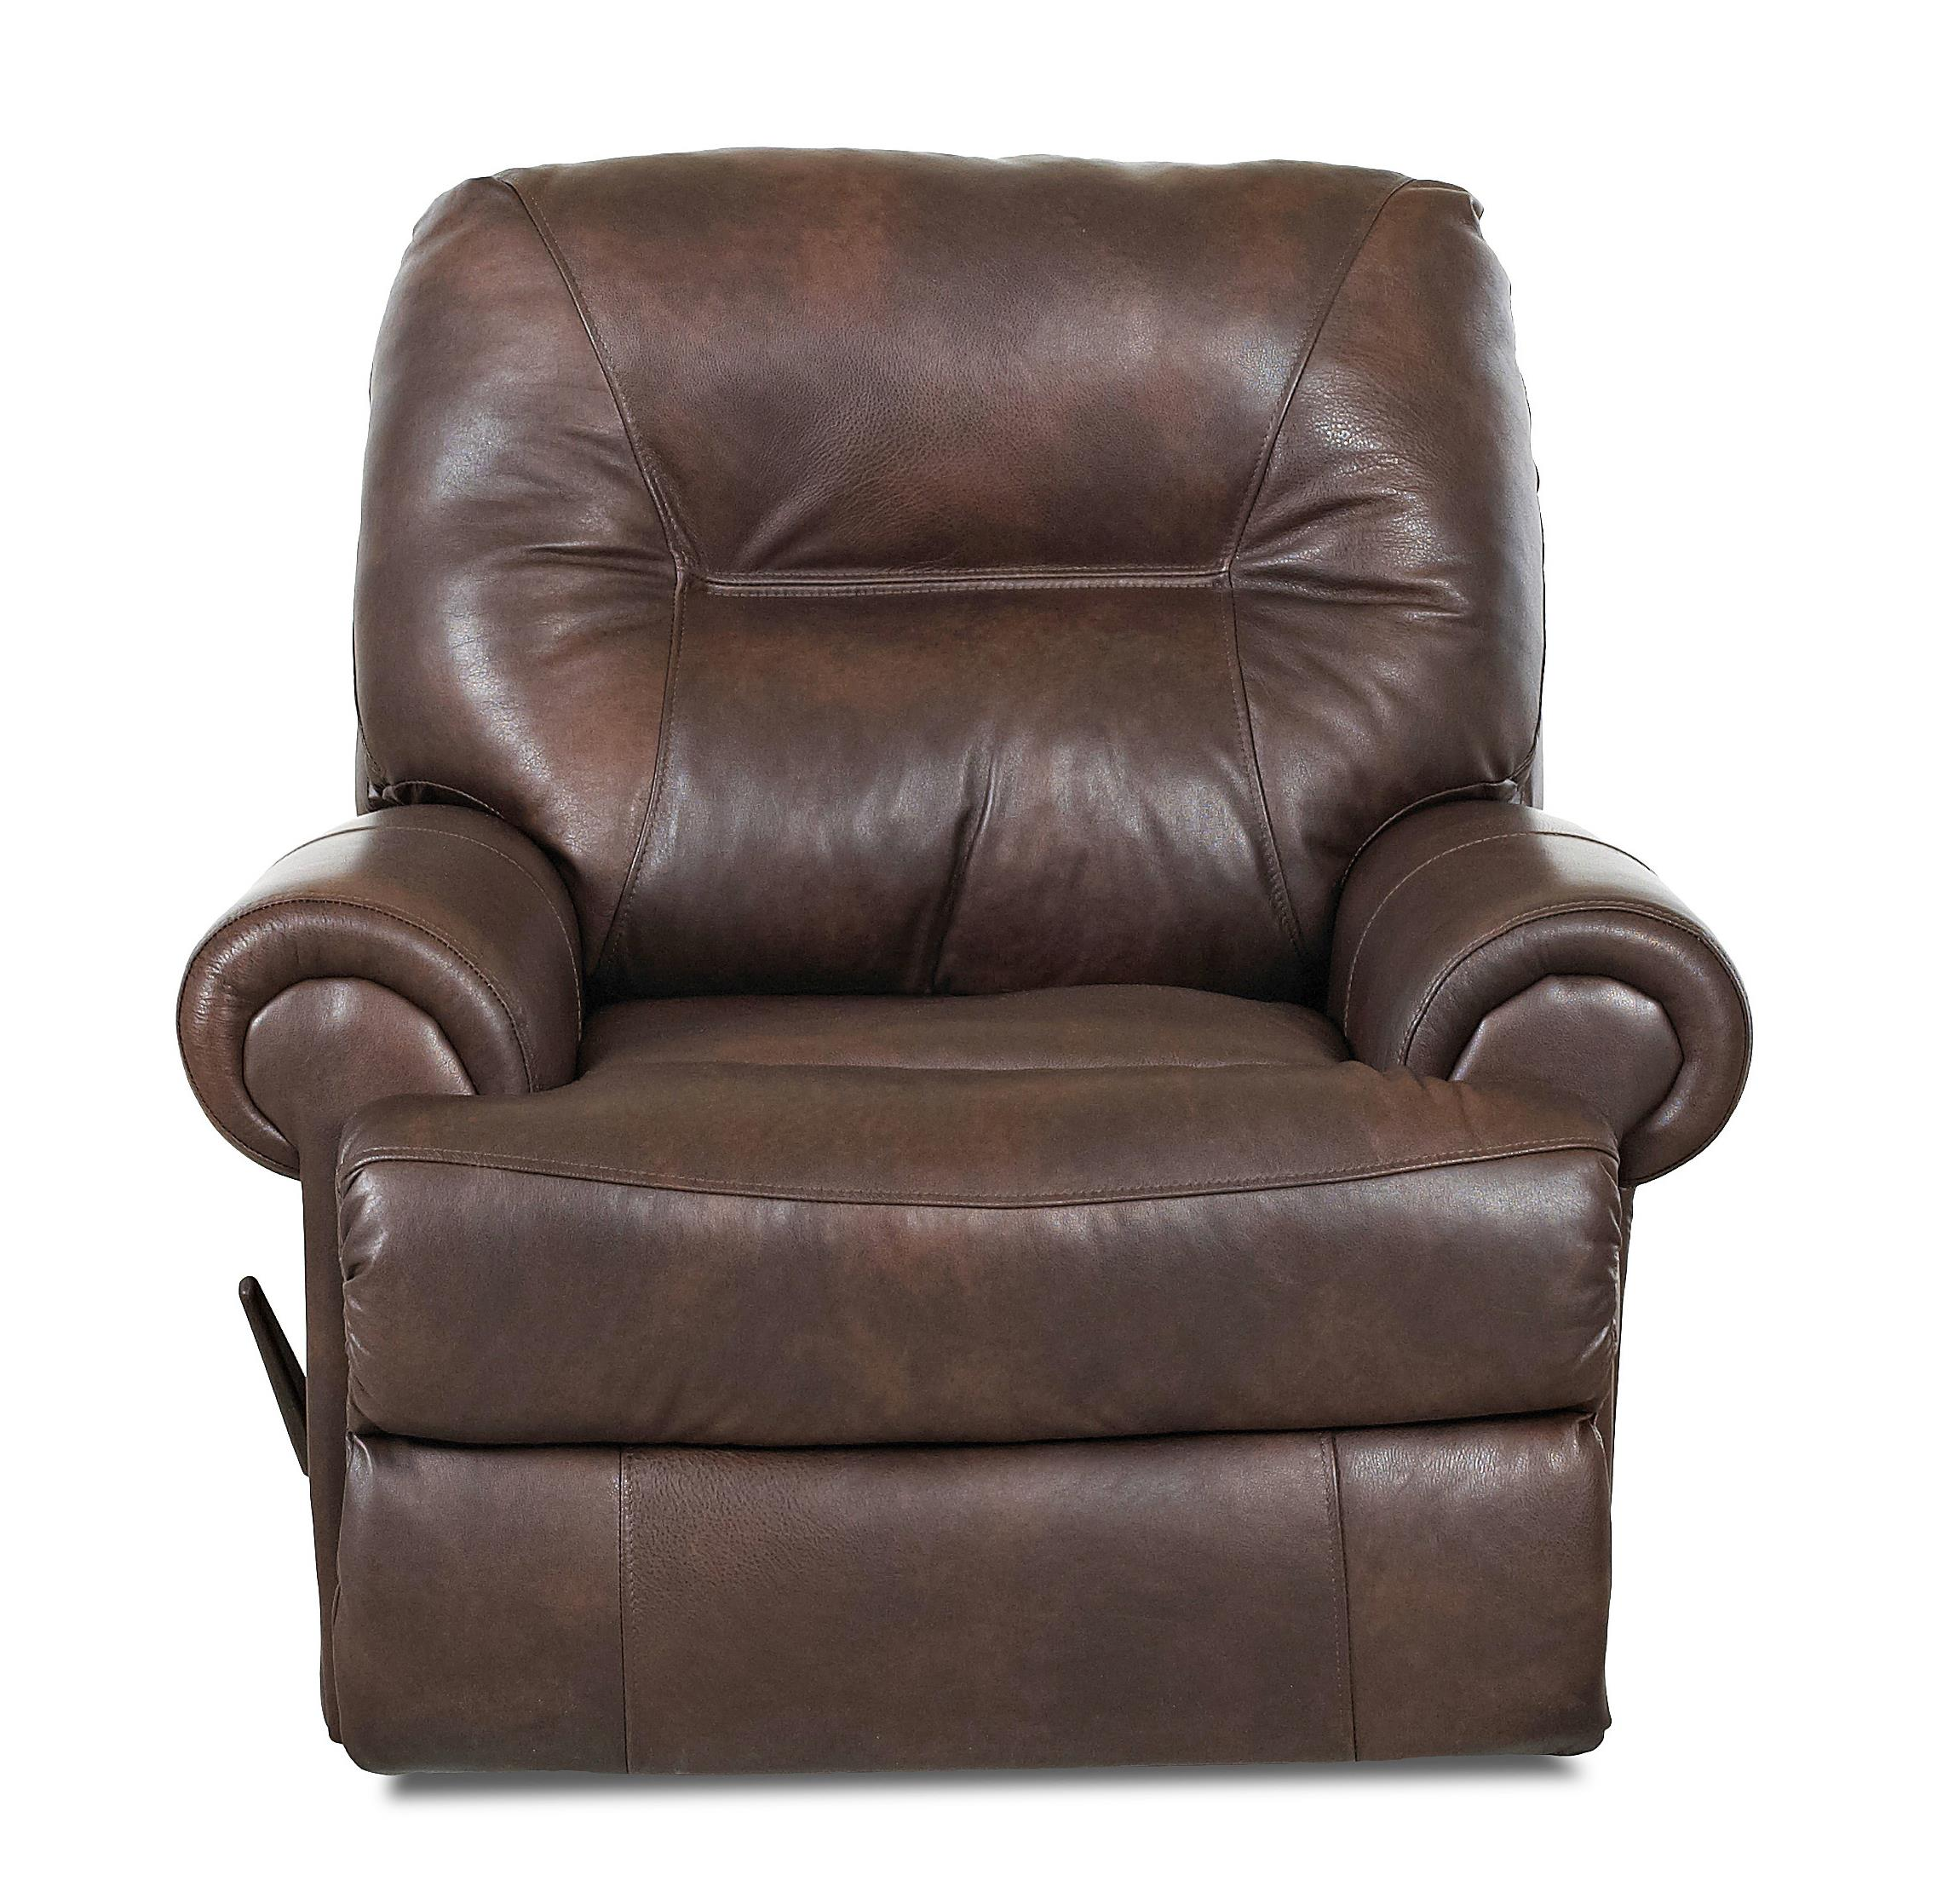 Power Reclining Chairs Klaussner Roadster Traditional Power Reclining Chair